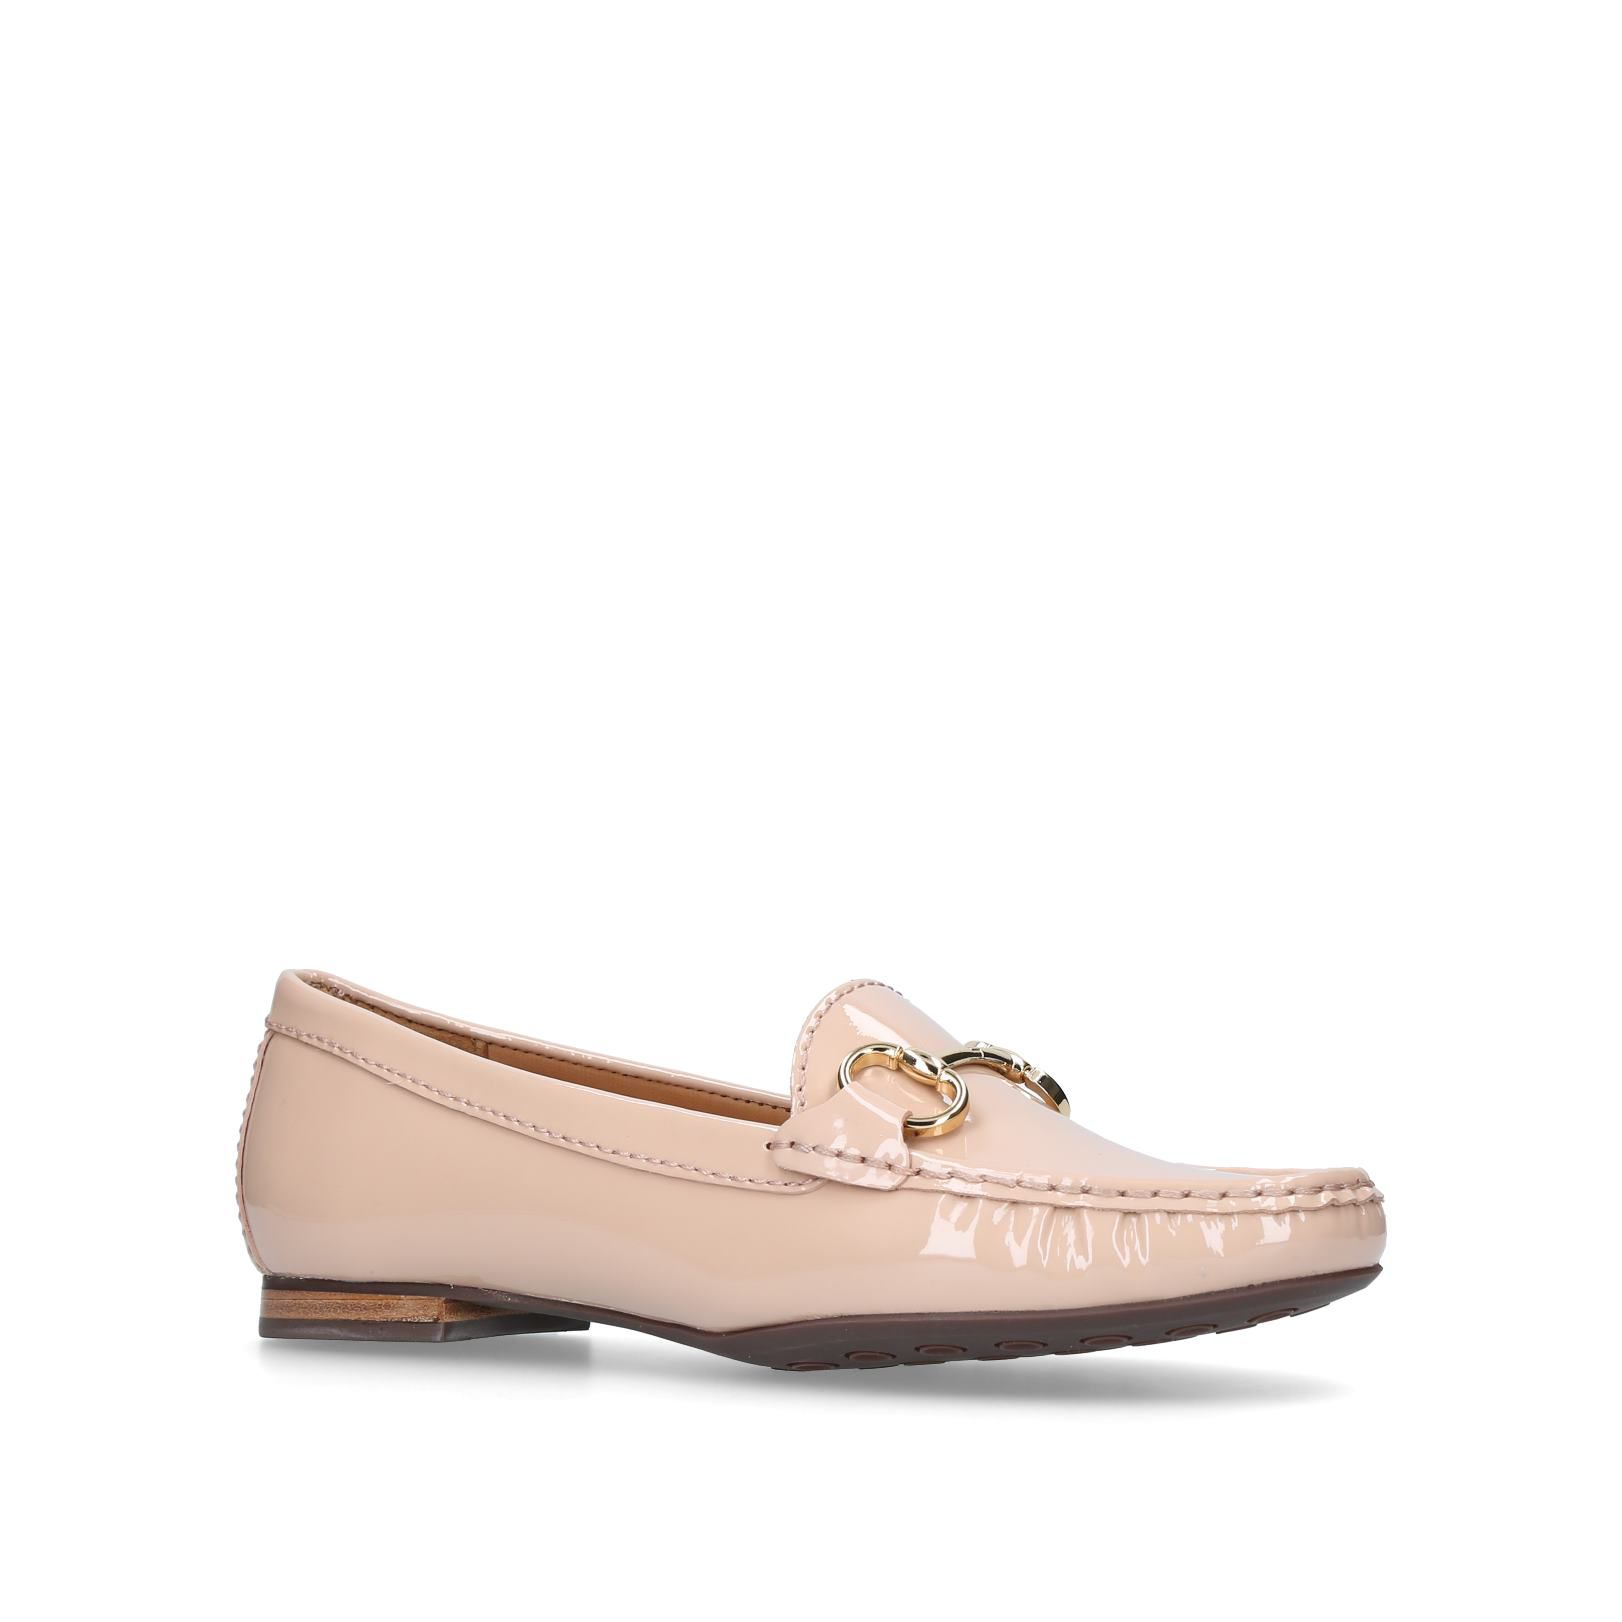 Carvela Comfort Cindy Loafers, Brule